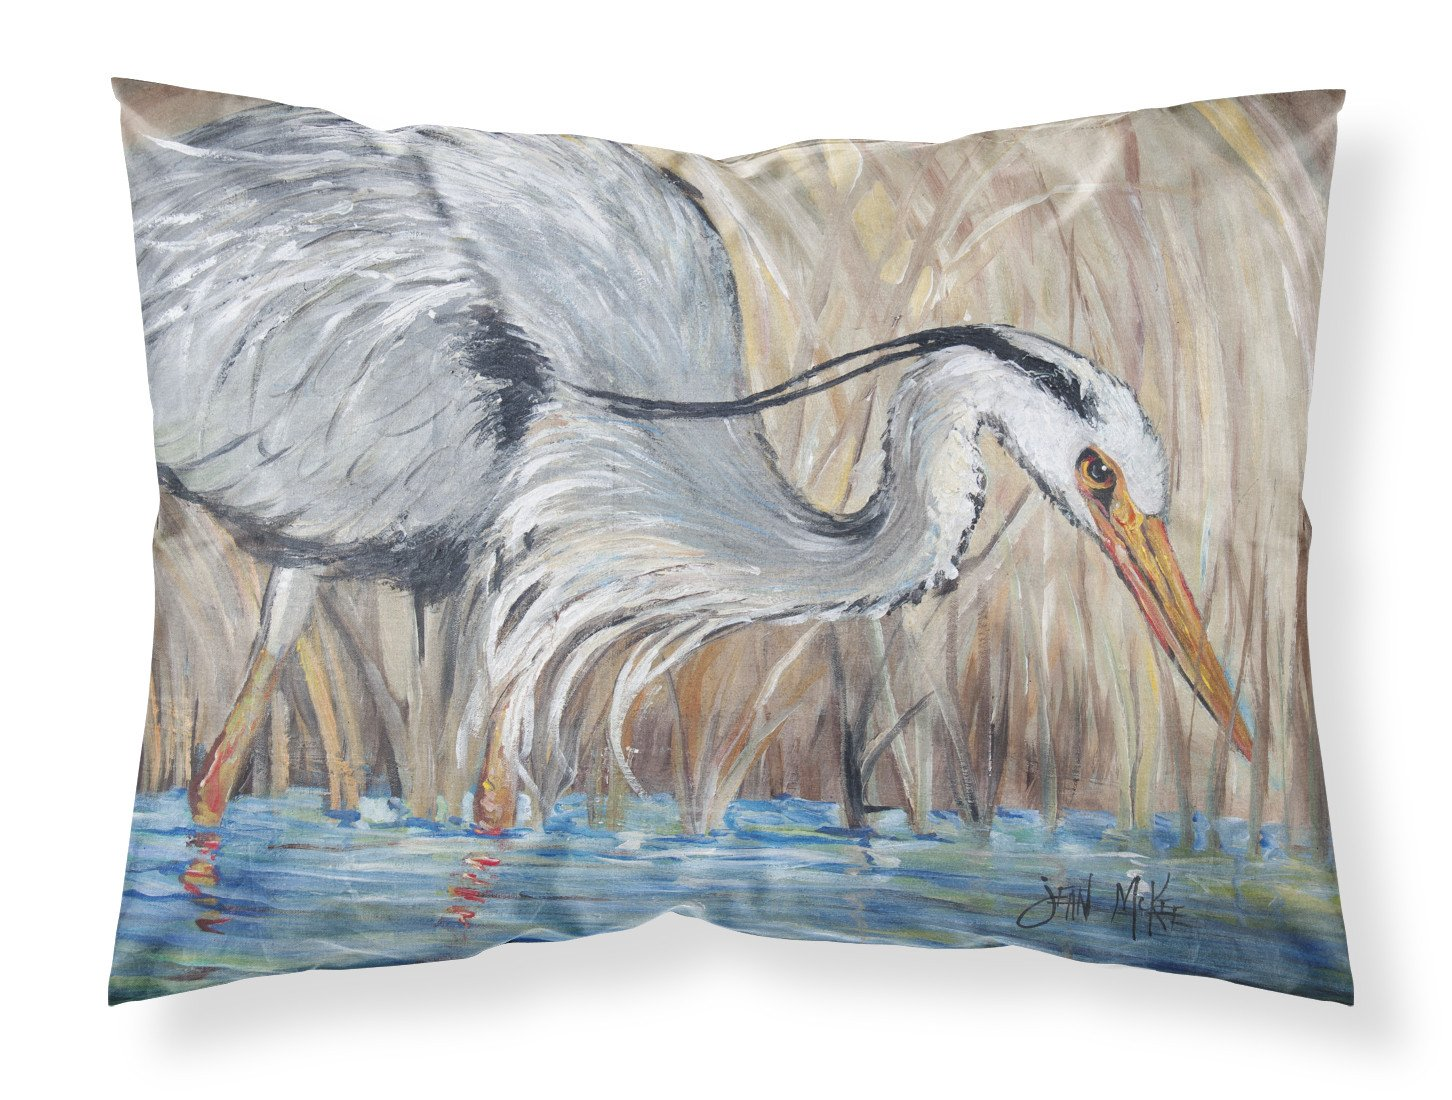 Buy this Blue Heron in the reeds Fabric Standard Pillowcase JMK1013PILLOWCASE